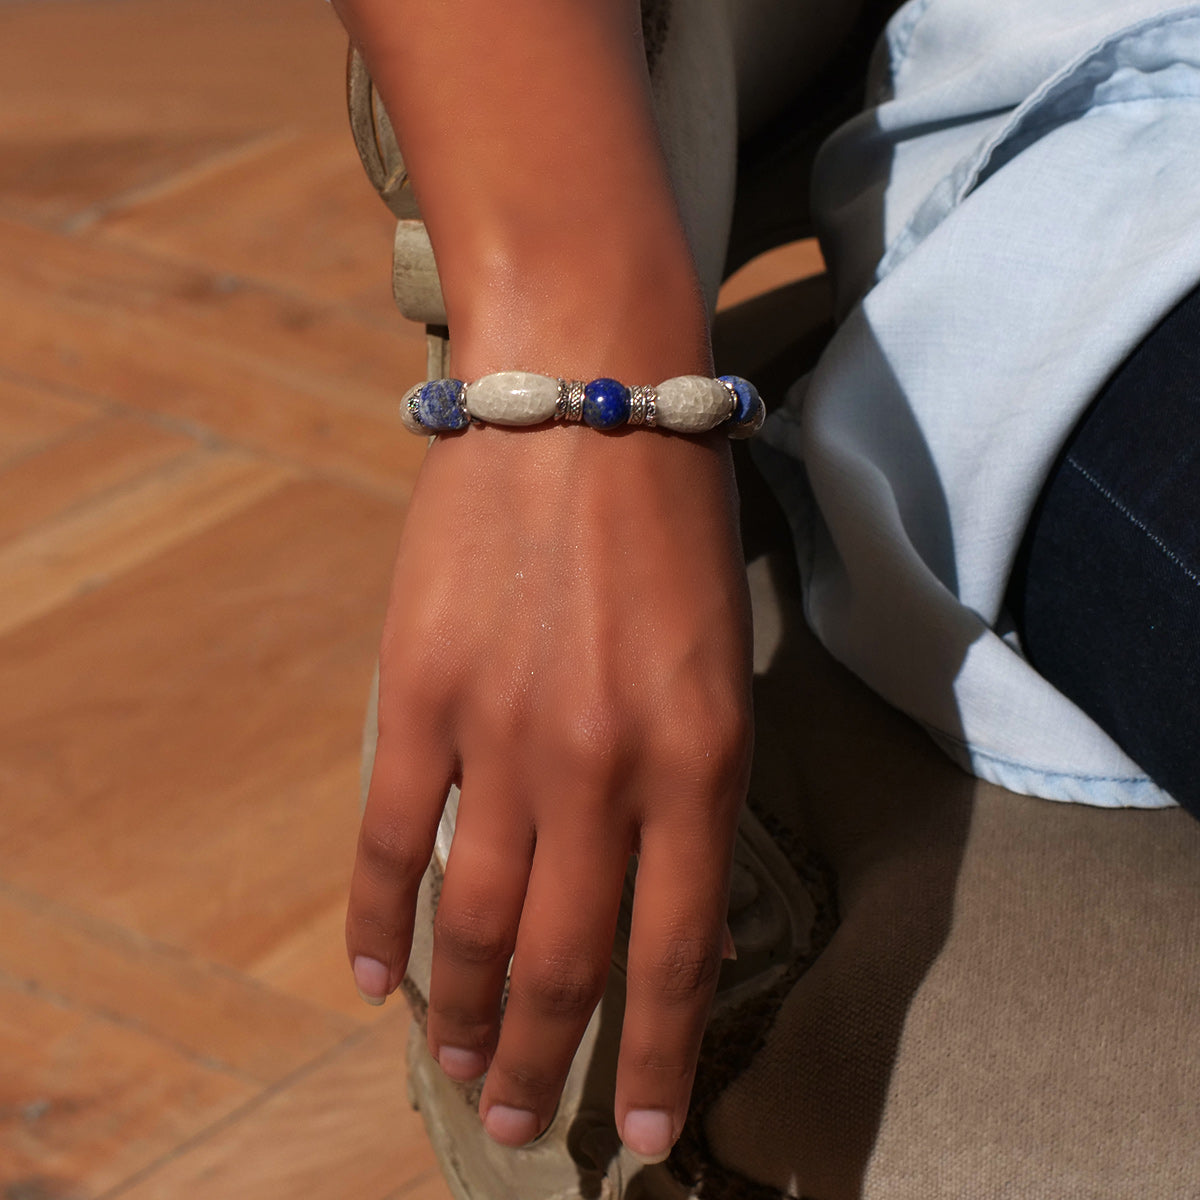 Women's Bracelet in Pearl Grey Faience and Chipped Lapis - Em Hotep Collection